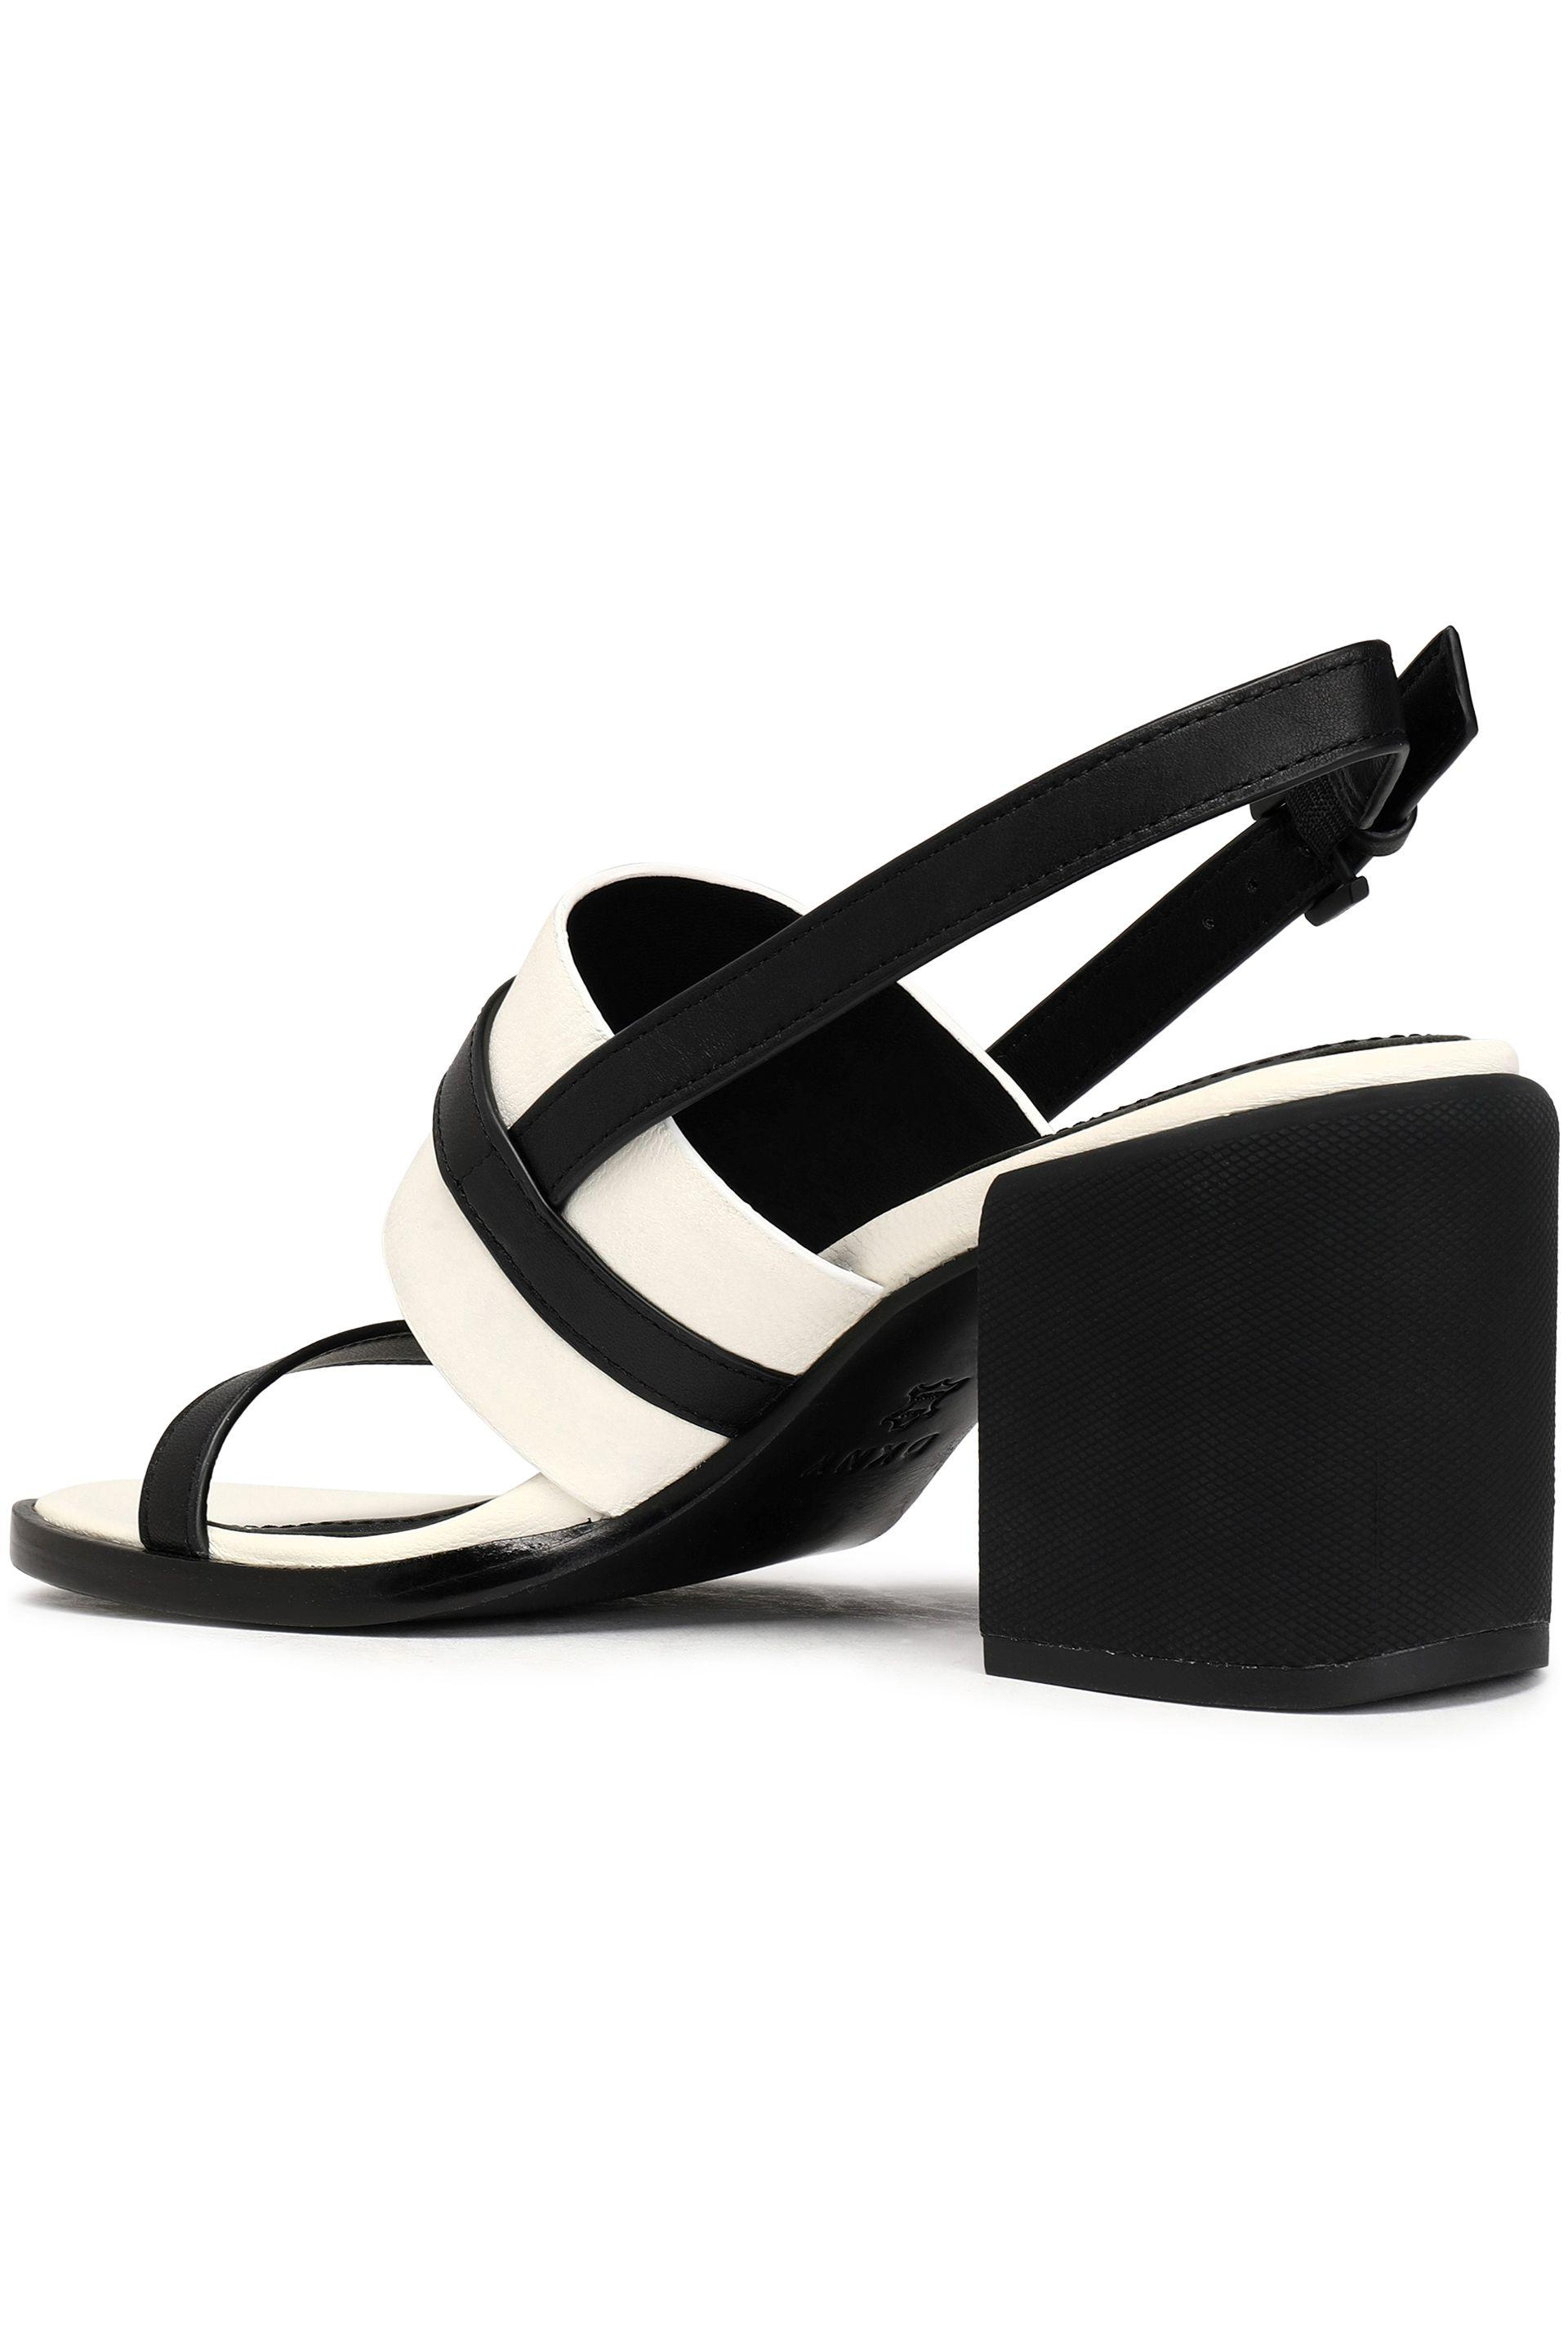 d25a78a15648 DKNY Two-tone Leather Slingback Sandals in Black - Lyst